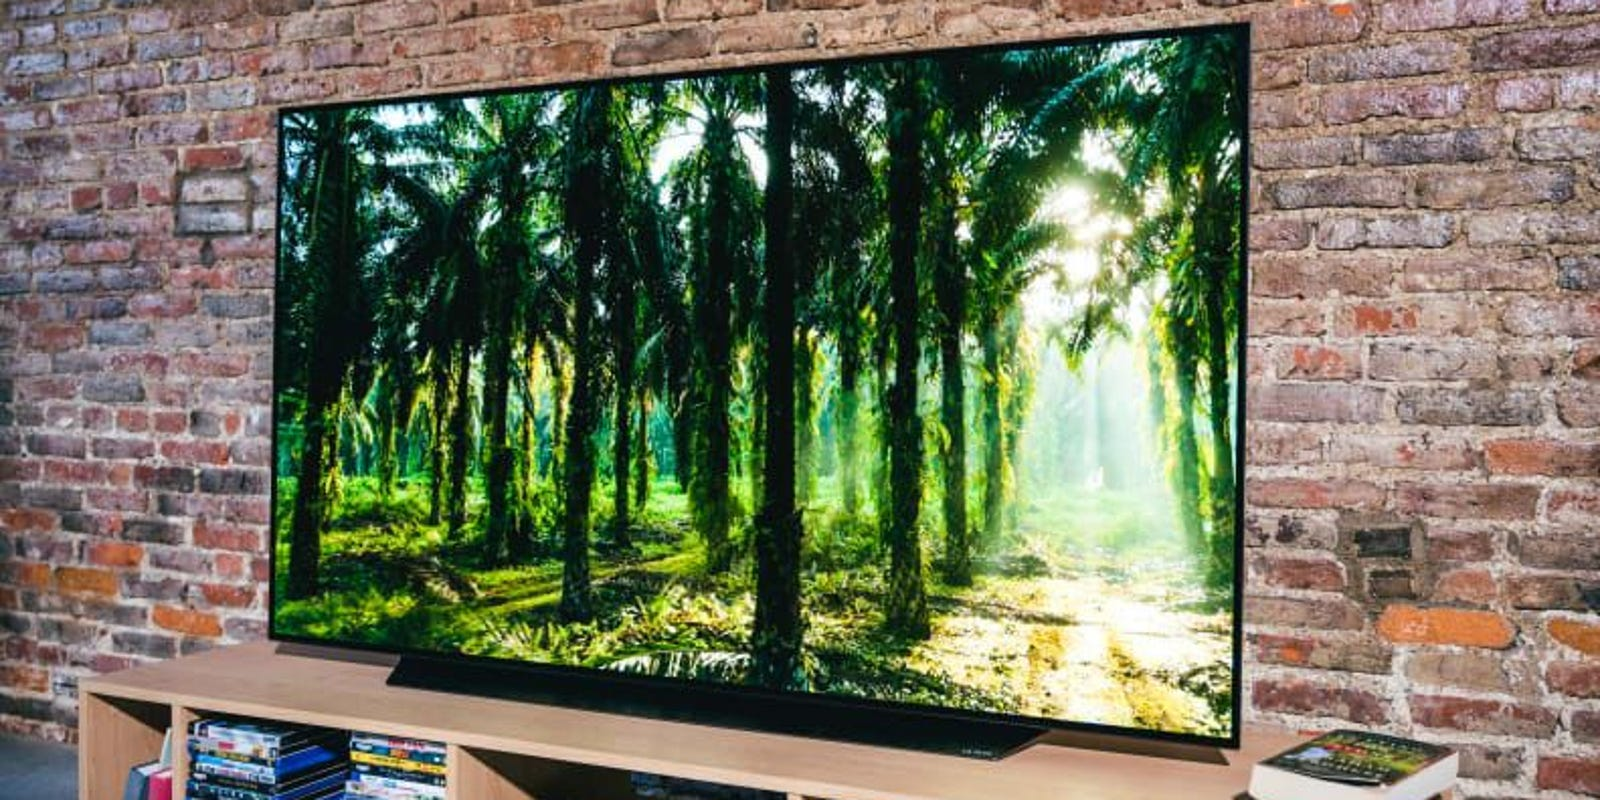 Save $1,200 on the LGOLED CX 4K TV